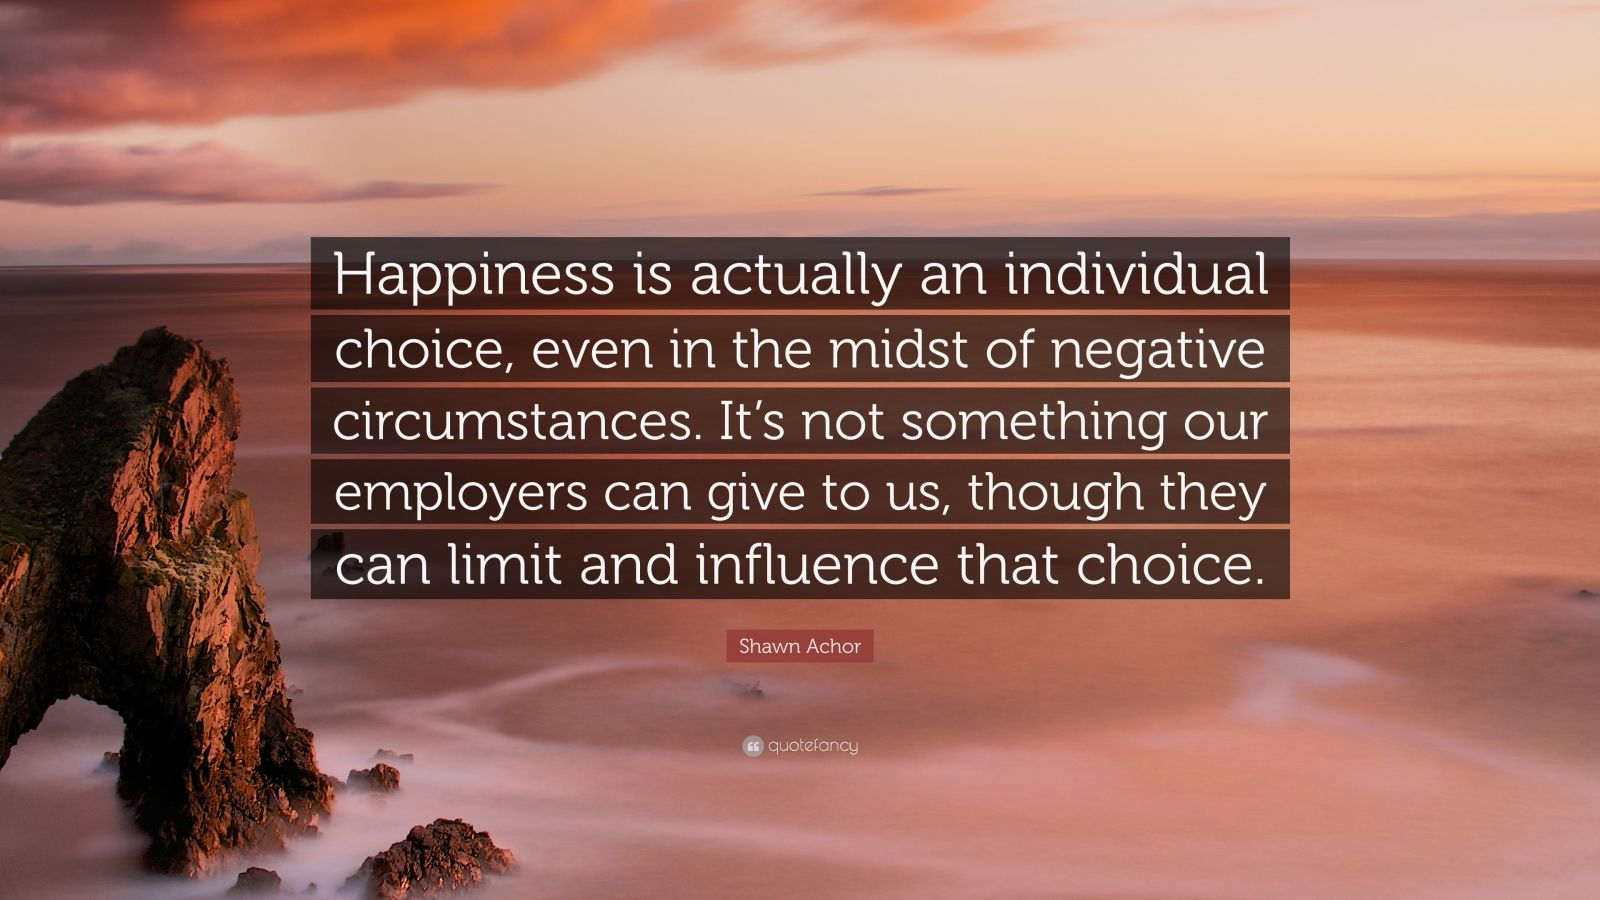 """Shawn Achor Quote: """"Happiness is actually an individual choice, even in the midst of negative circumstances. It's not something our employers can give to us, though they can limit and influence that choice."""""""